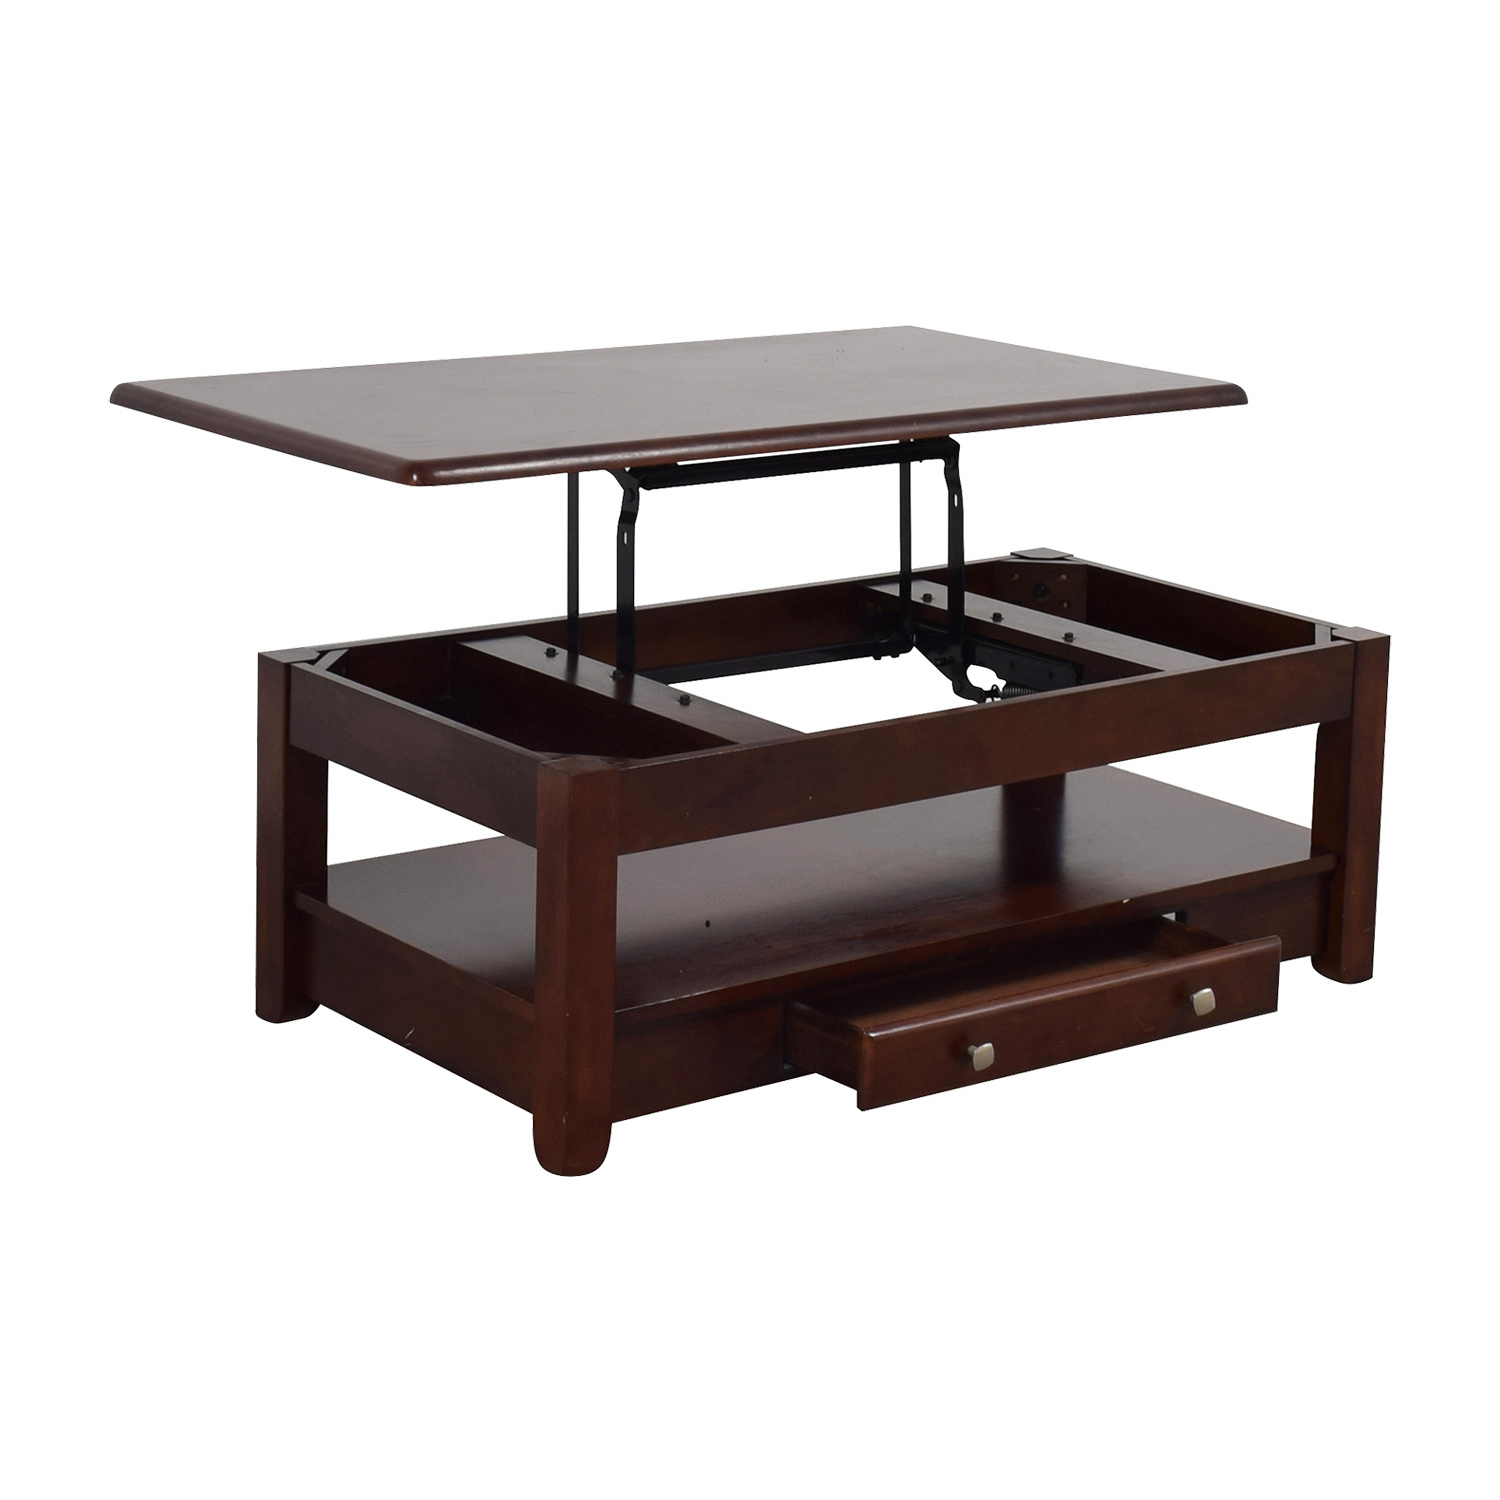 Raymour & Flanigan Lift Top Coffee Table / Tables